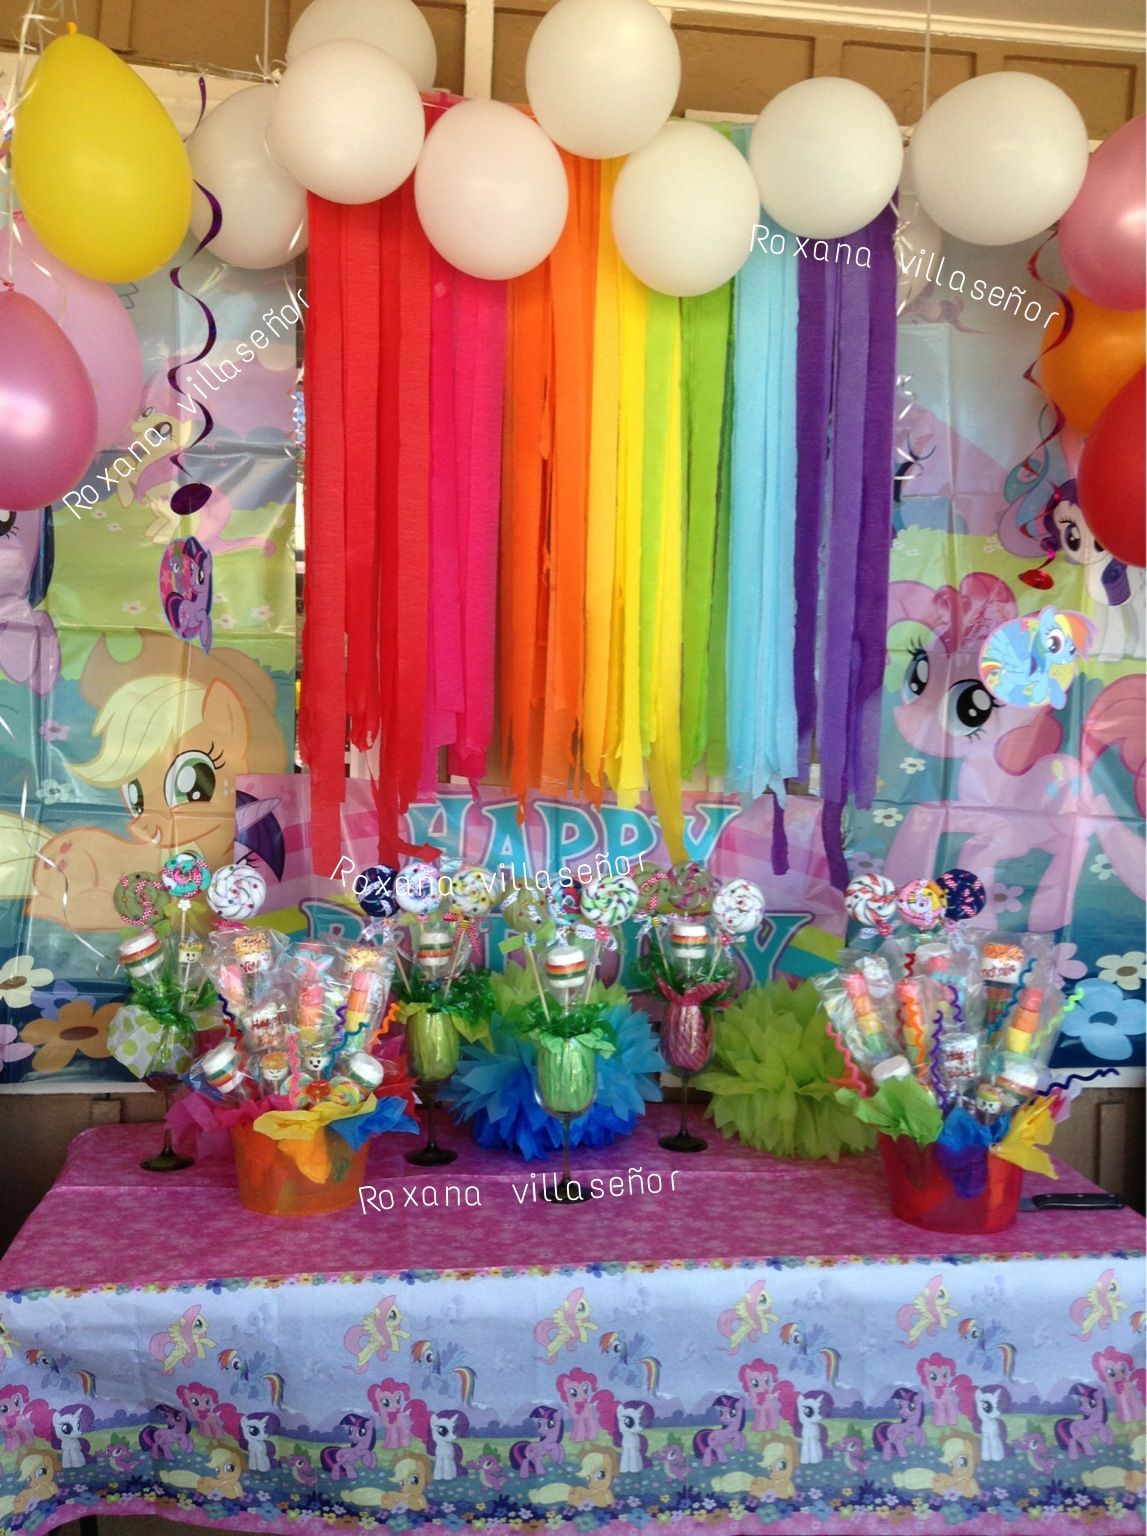 My Little Pony Birthday Party Decorations For My Twin Daughters 6